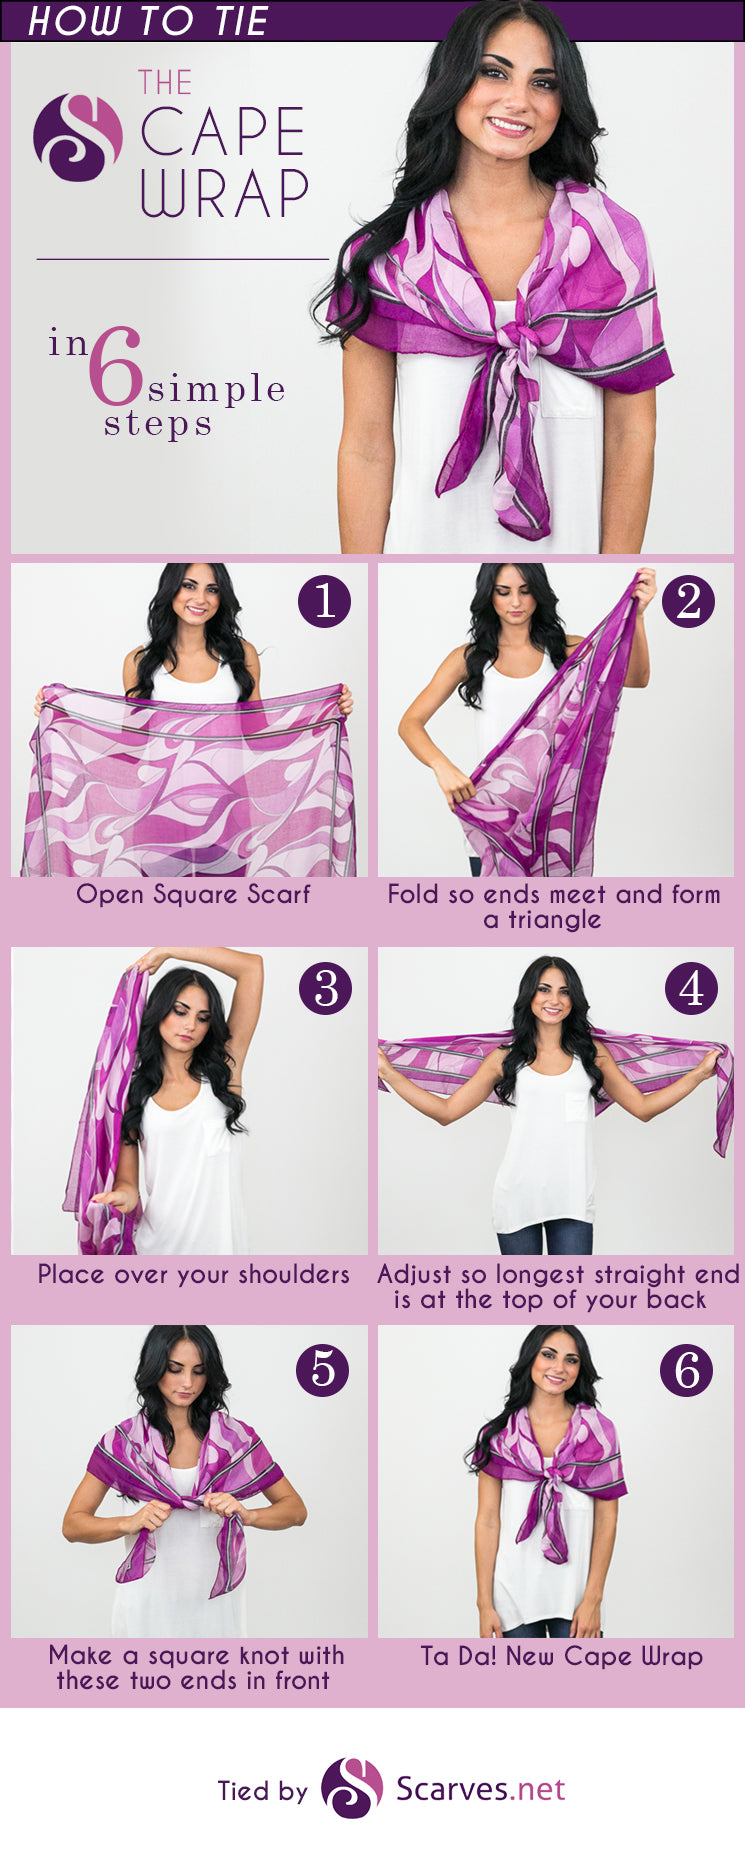 The Cape Wrap in 6 simple steps